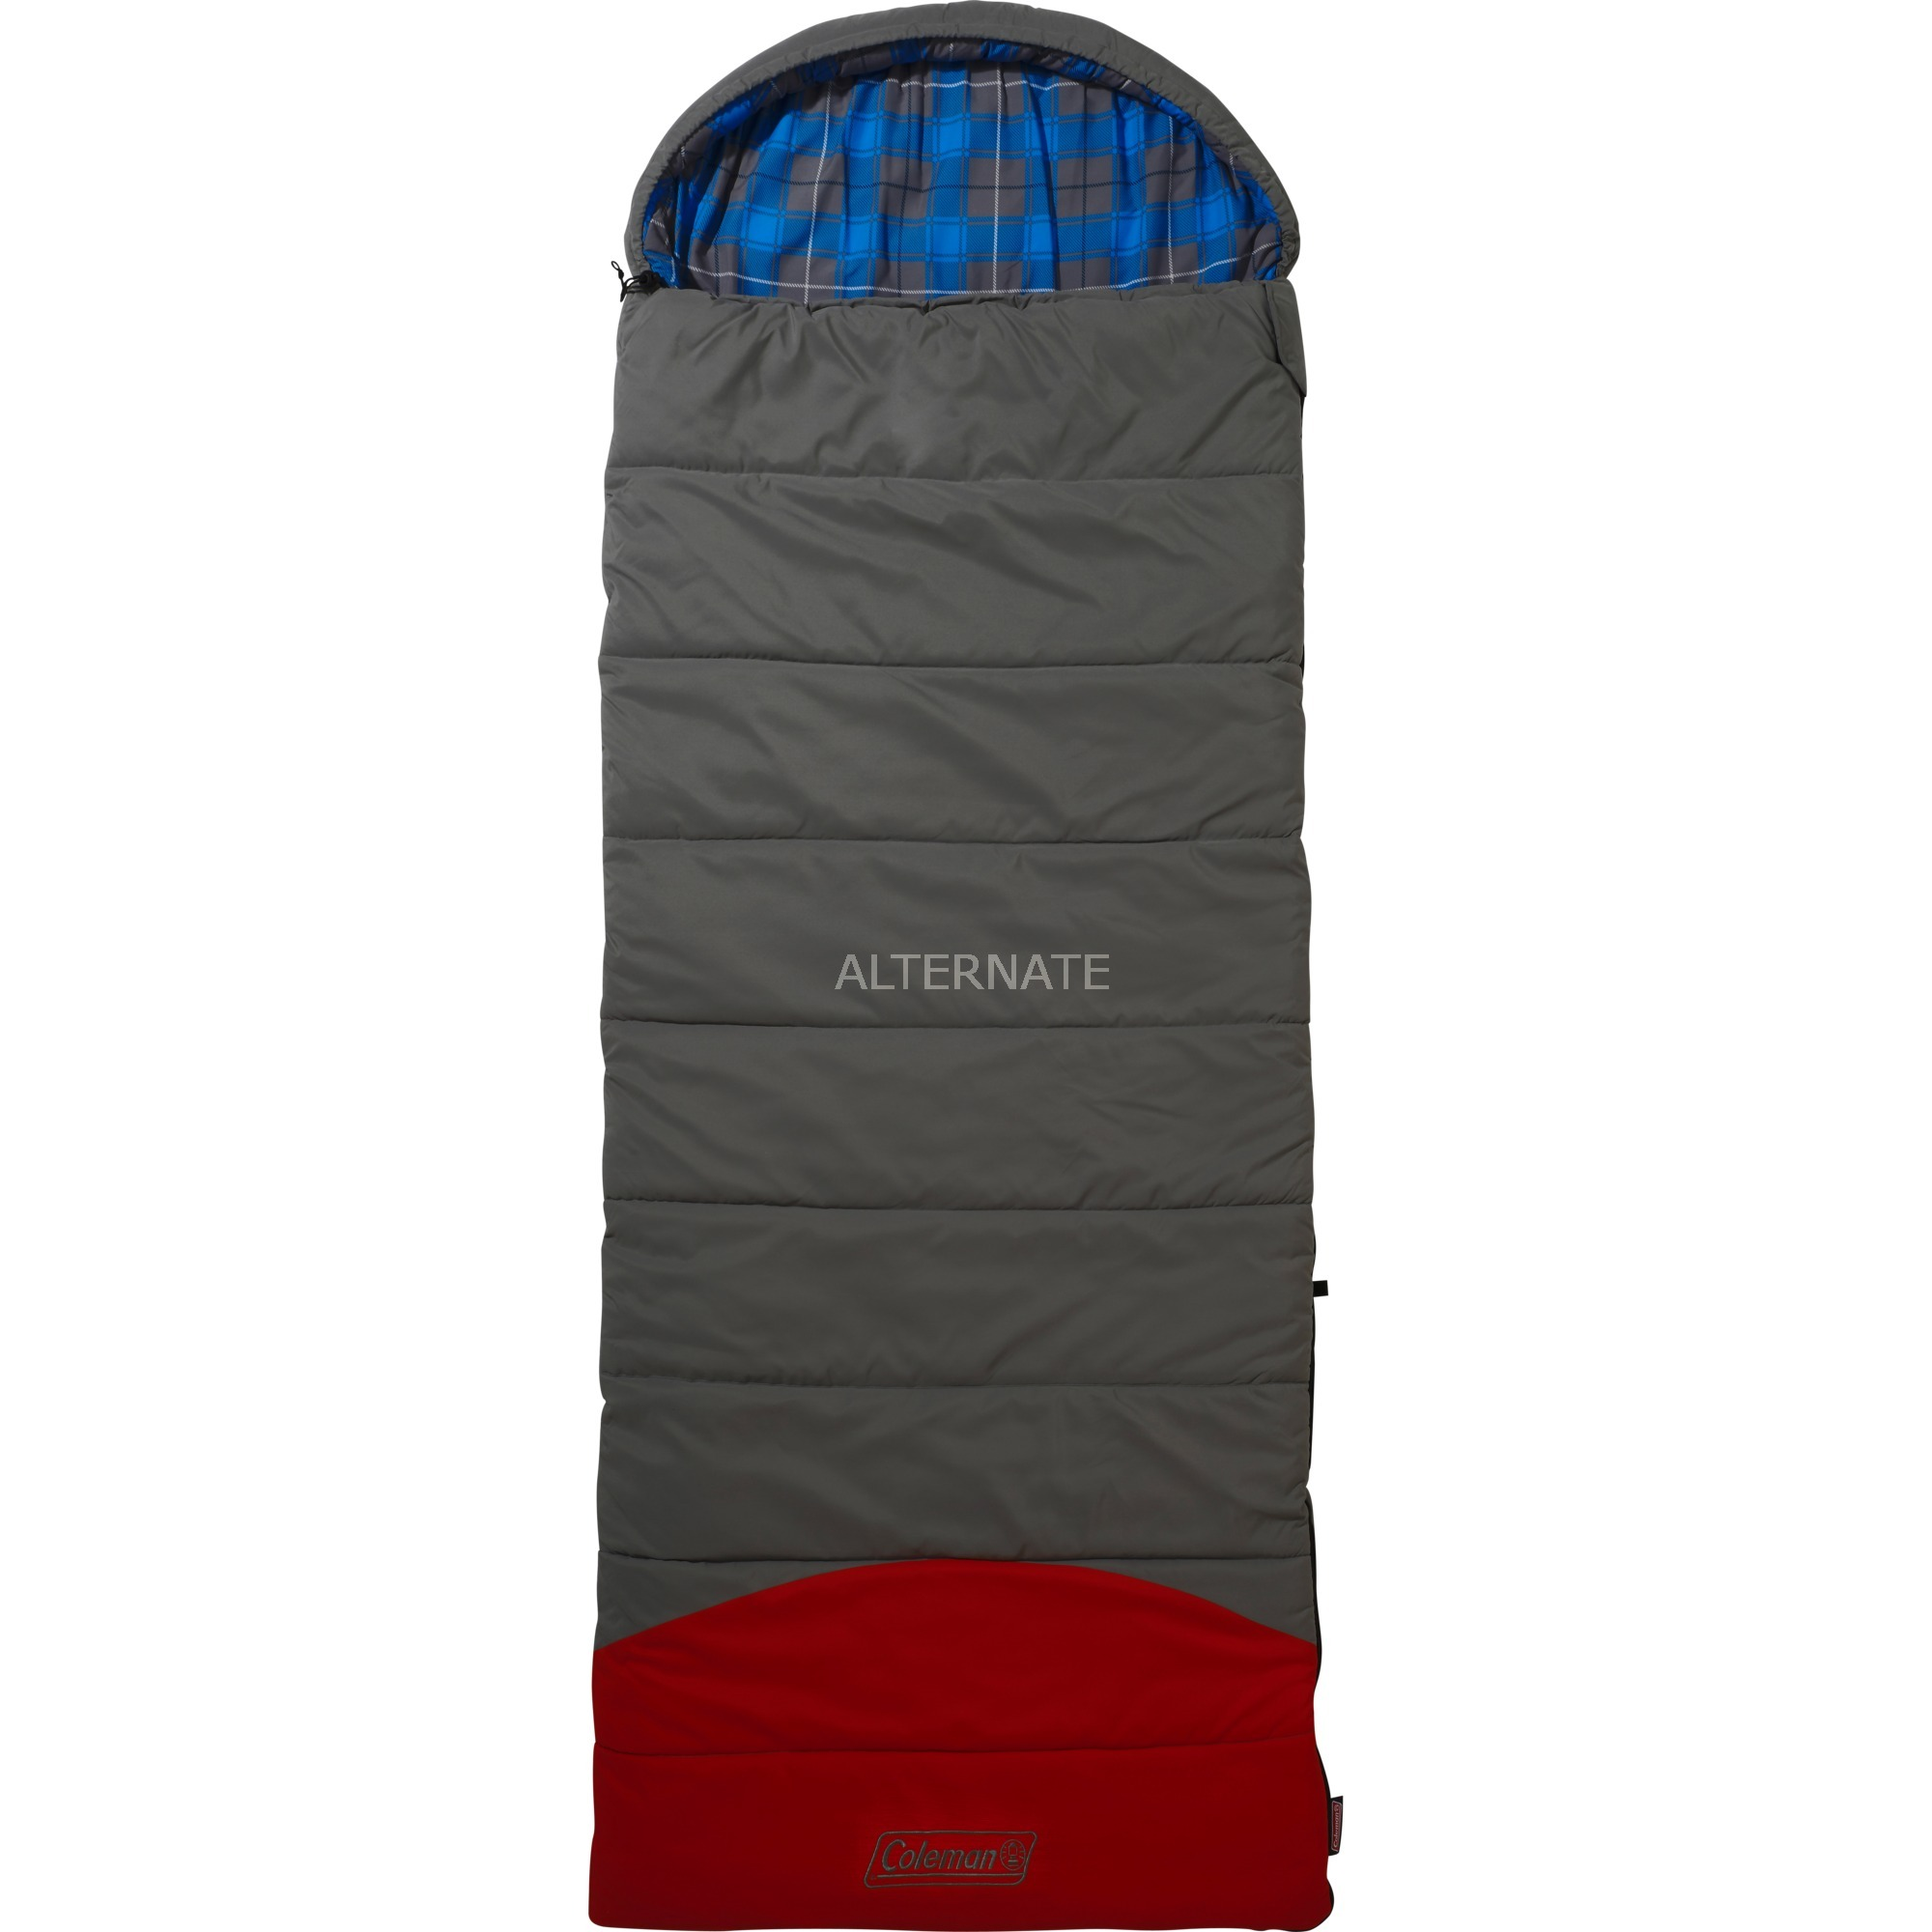 sovepose-voksen-rectangular-sleeping-bag-polyester-graa-rod-sovepose